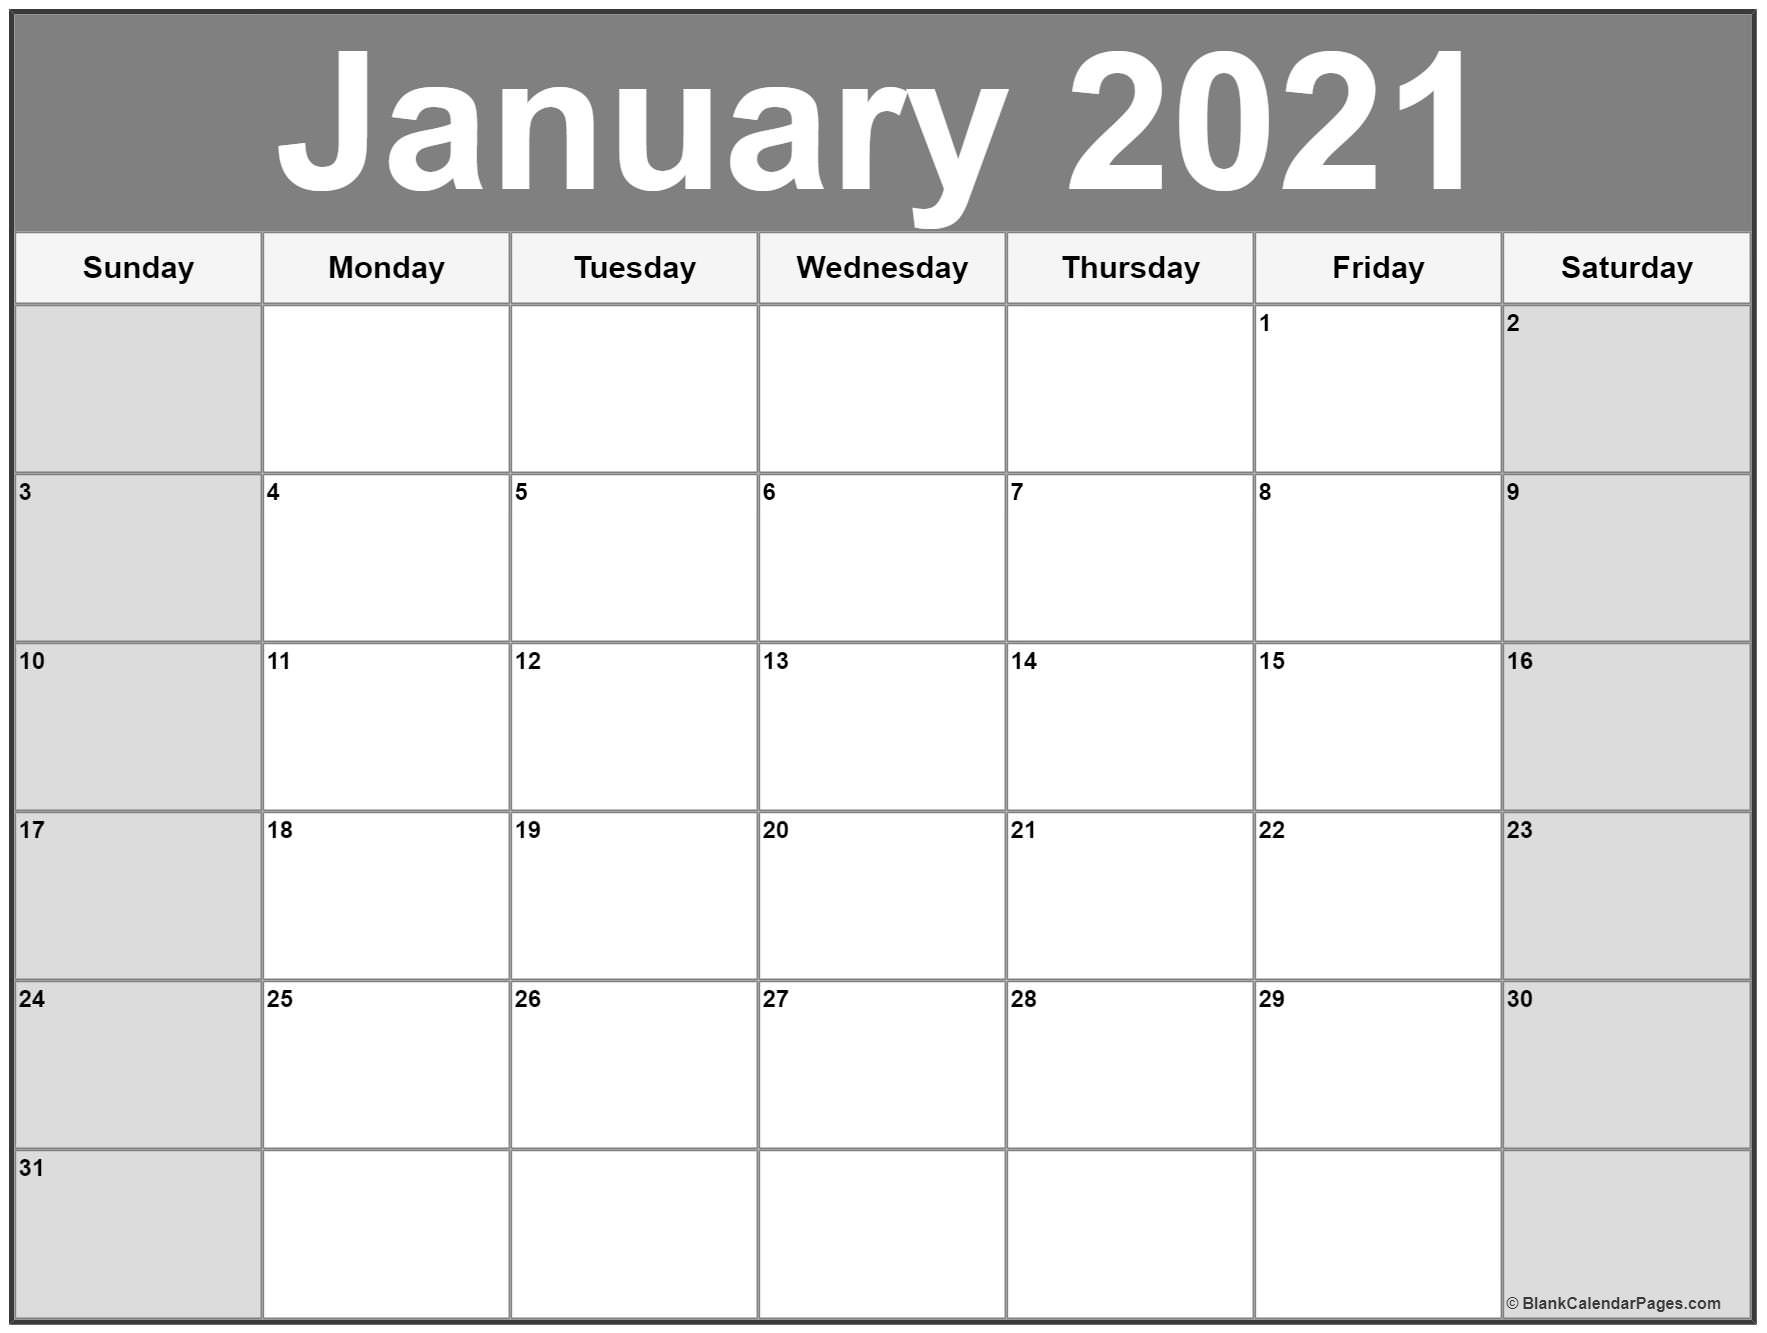 January 2021 Calendar | Free Printable Monthly Calendars-2021 Print Free Calendars Without Downloading